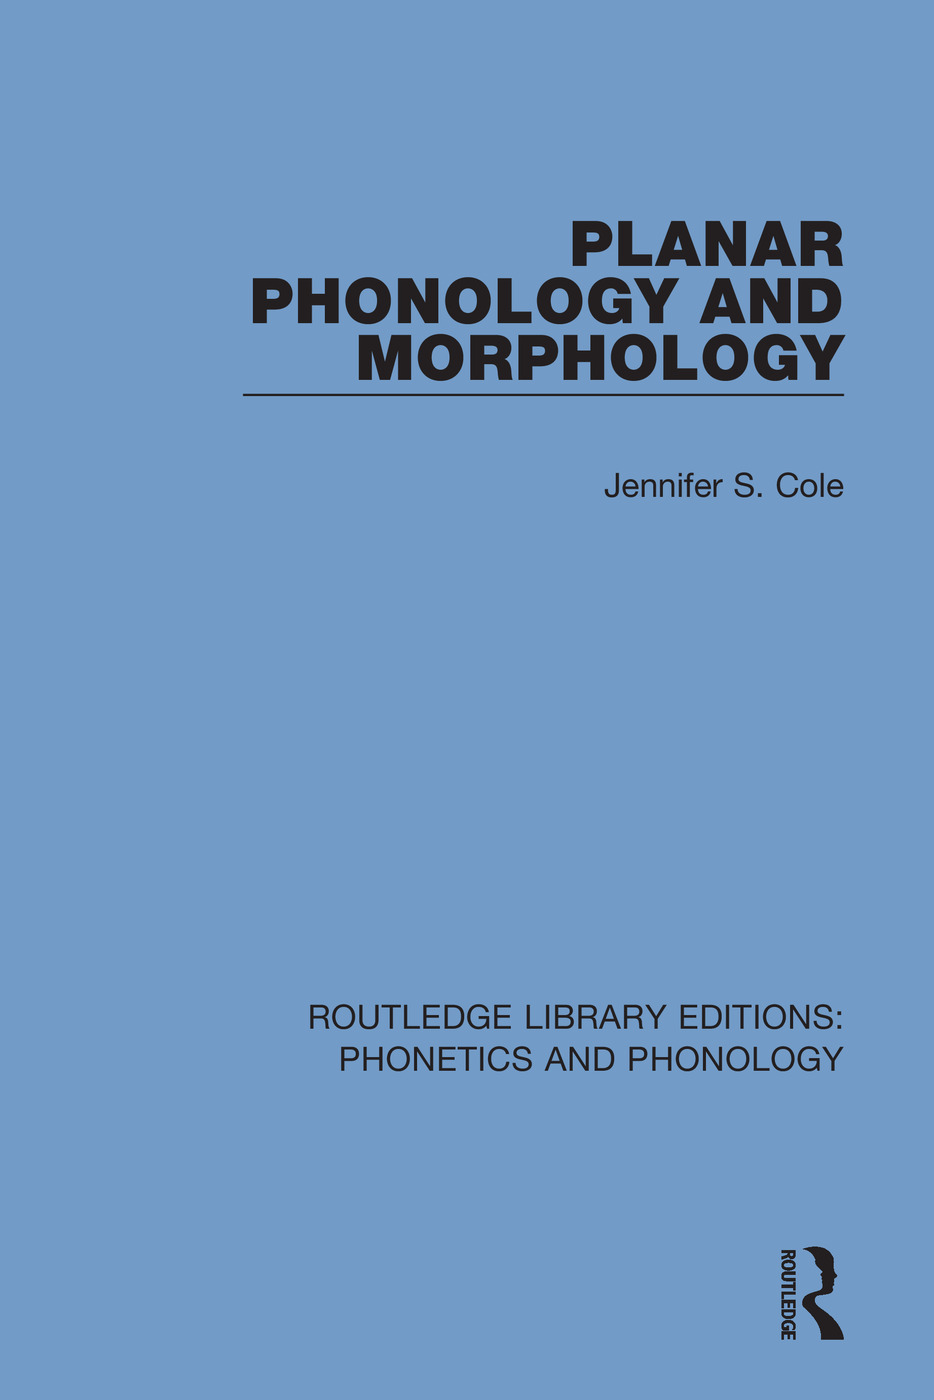 Planar Phonology and Morphology